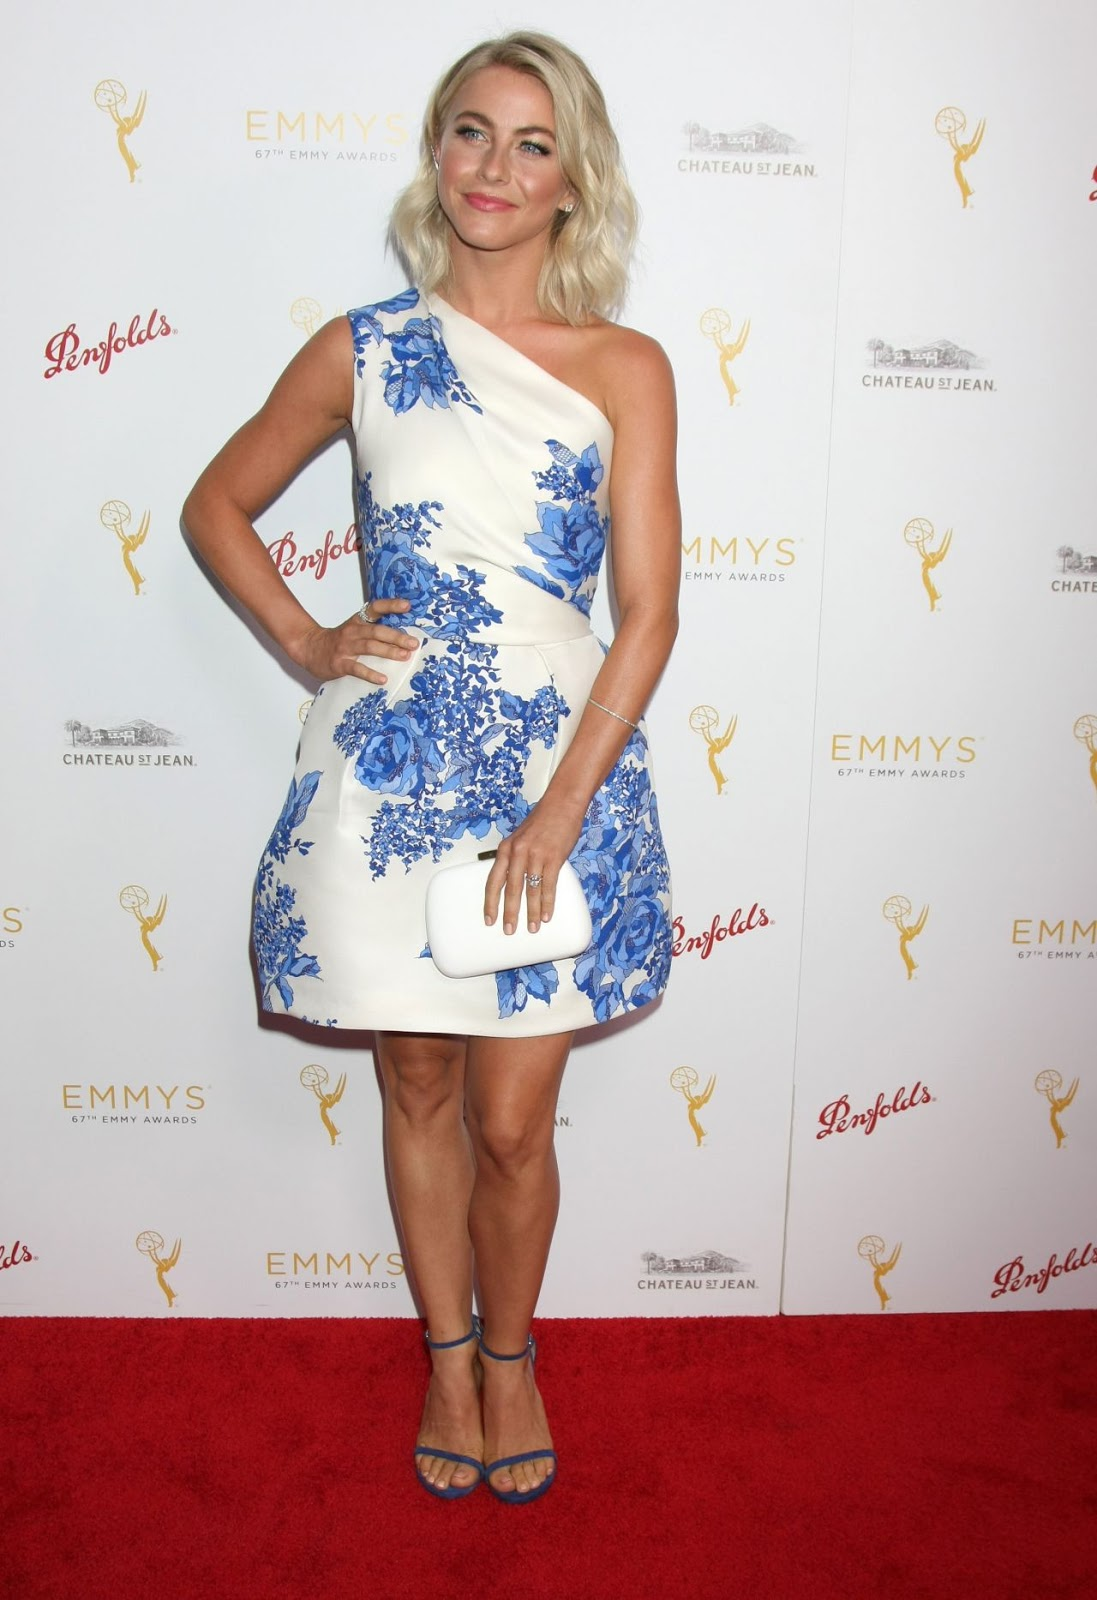 Julianne Hough – 2015 Emmy Awards Nominees Cocktail Reception in Beverly Hills